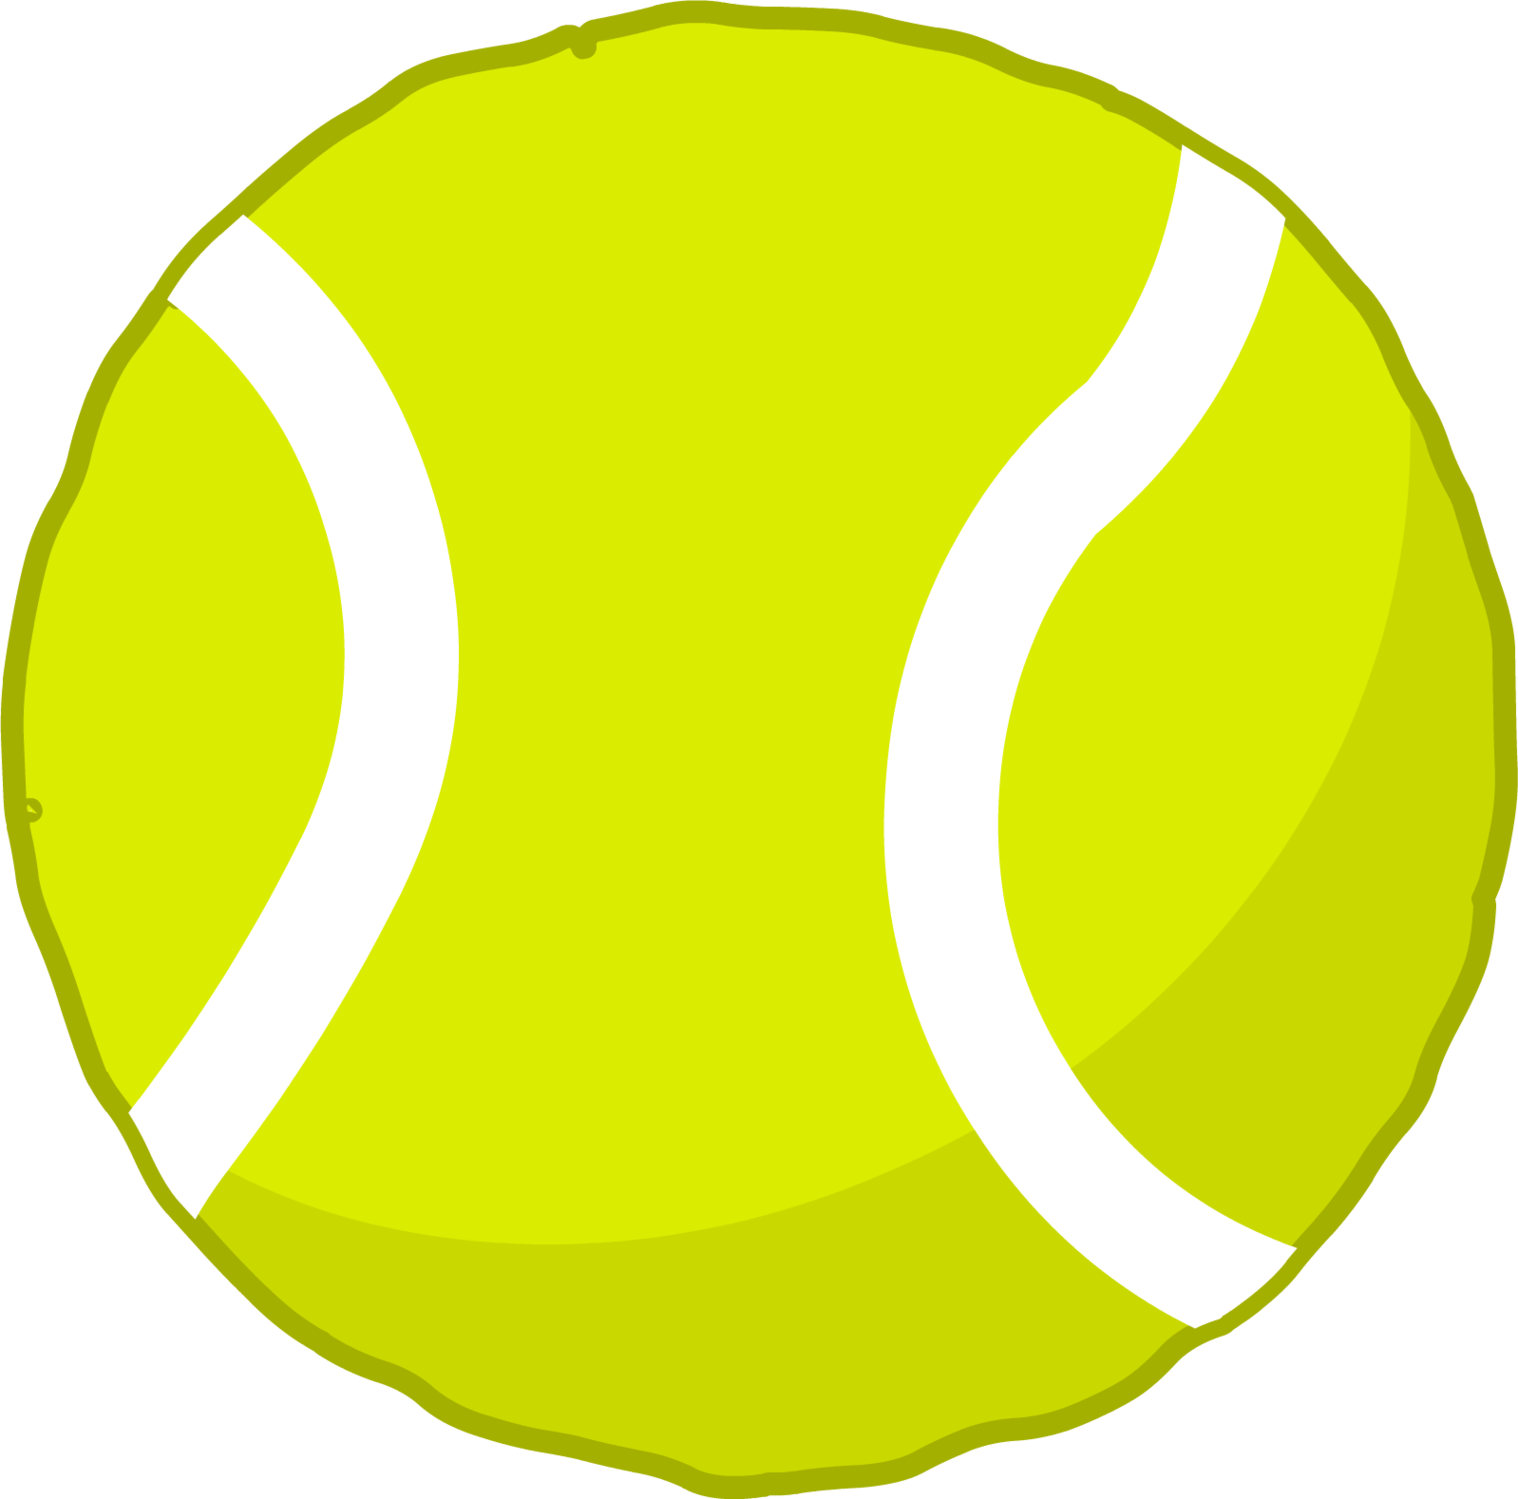 Clipart free tennis. Picture of ball to